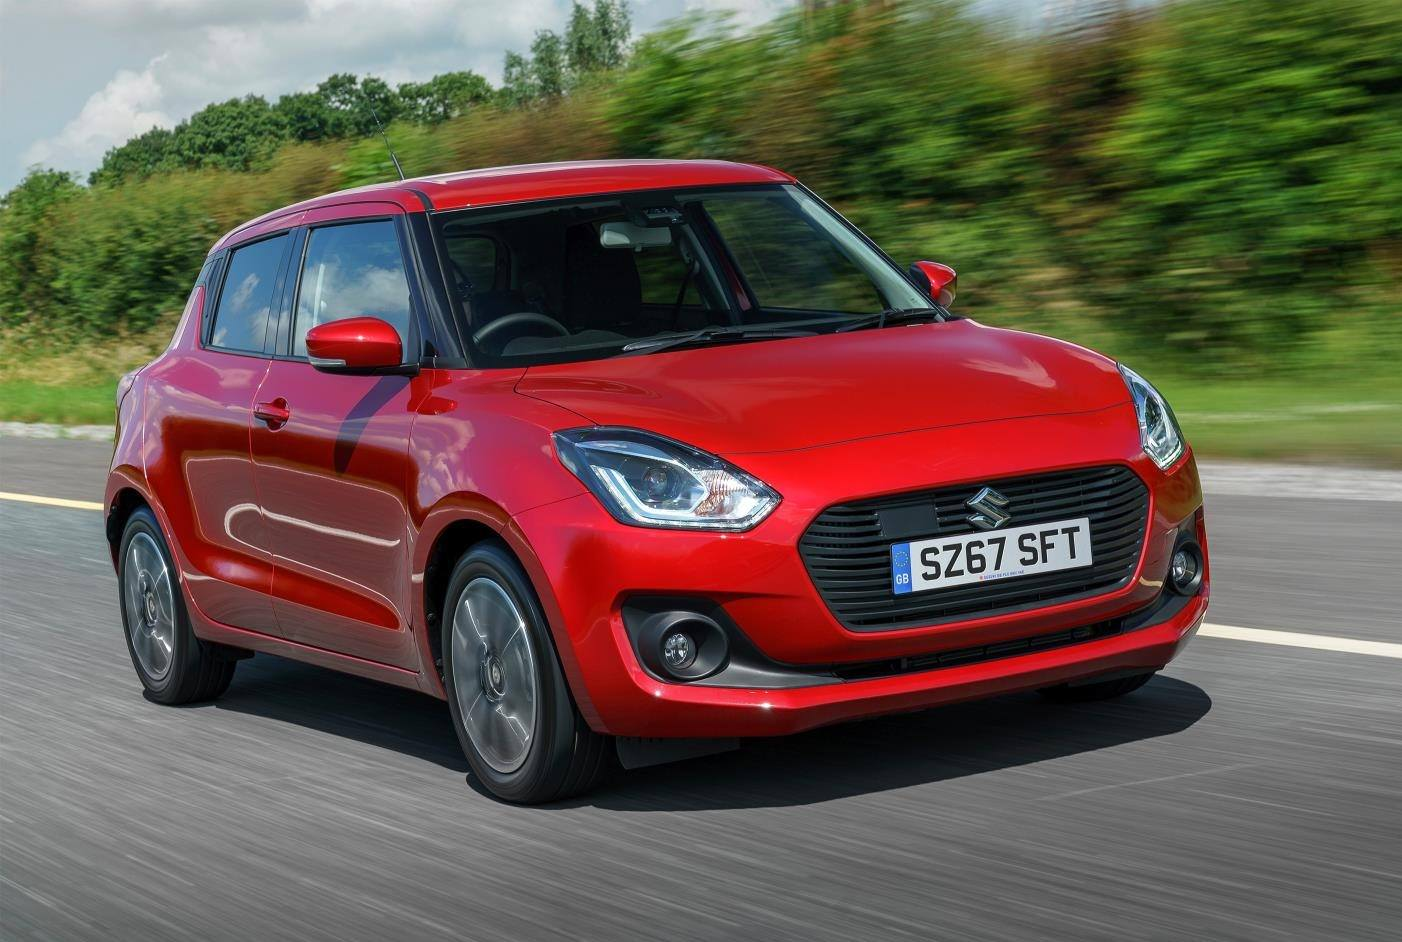 image of a red suzuki swift hybrid car exterior